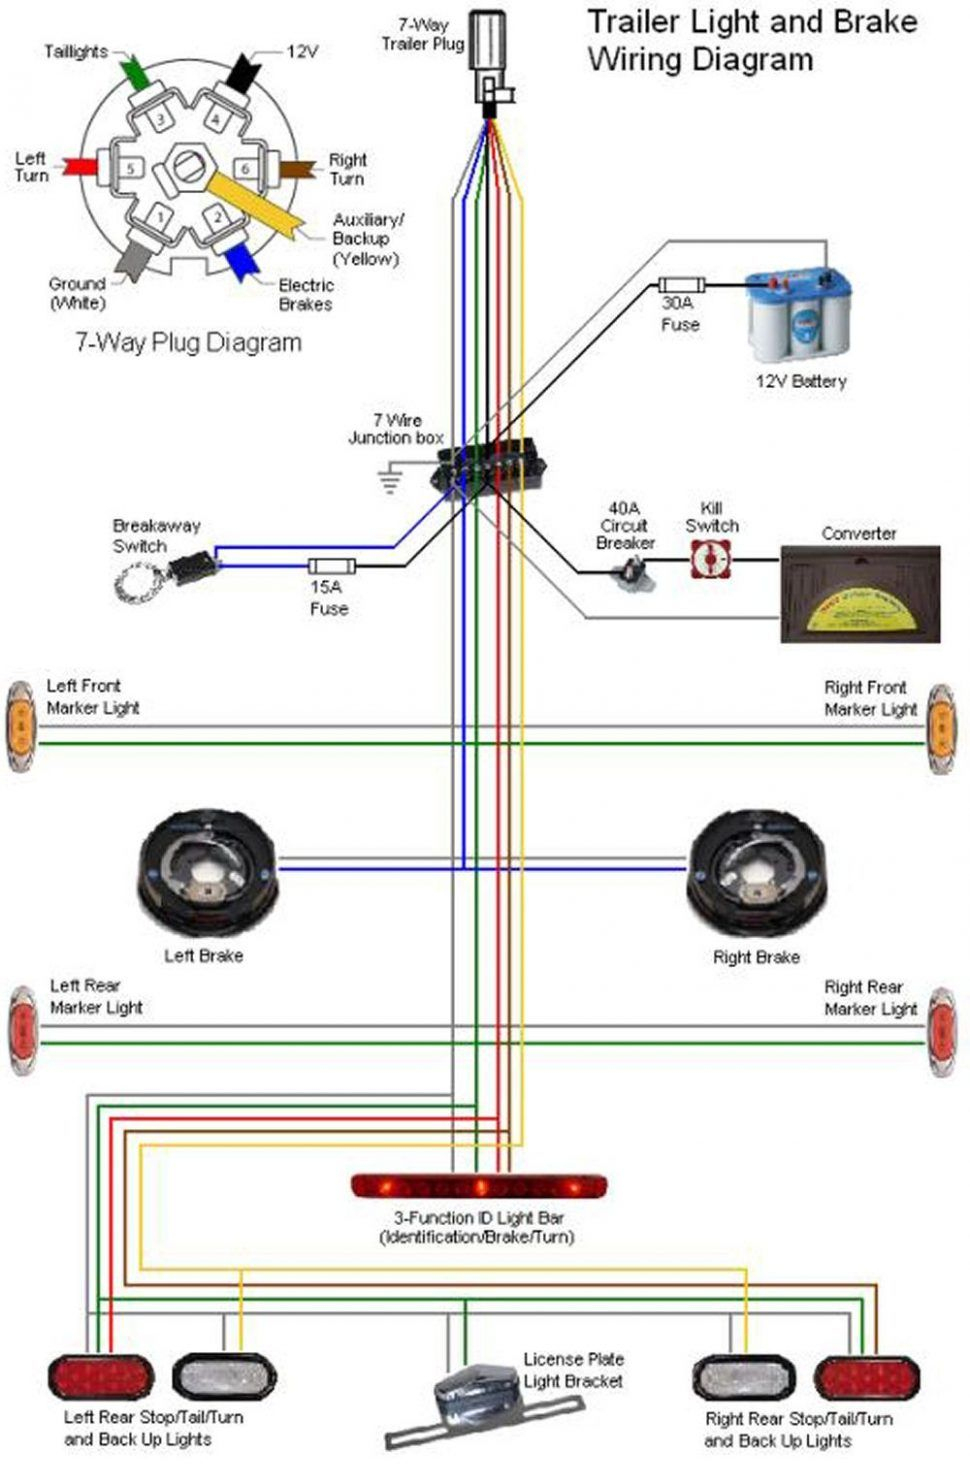 Seven Pin Trailer Wiring Diagram | Wiring Diagrams Gallery - Rv Trailer Wiring Diagram